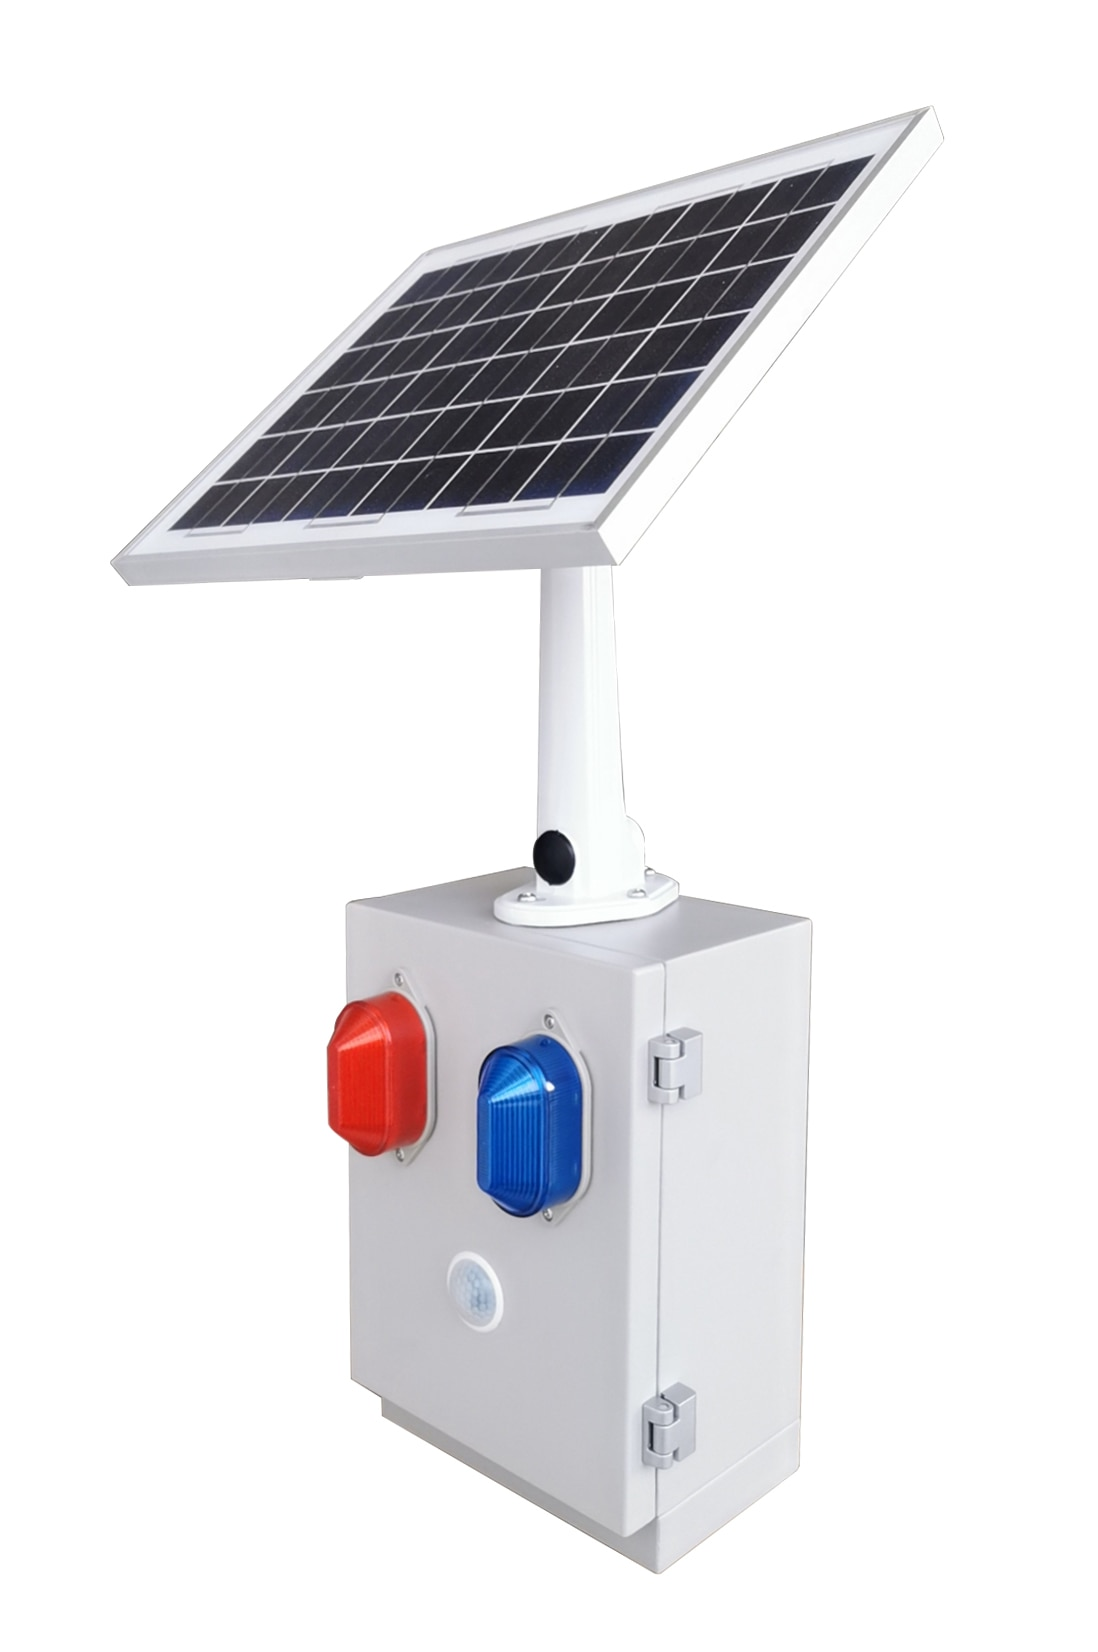 TY602 Waterproof Microwave 20W Power Supply Induction Solar Alarm for Traffic Intersection enlarge